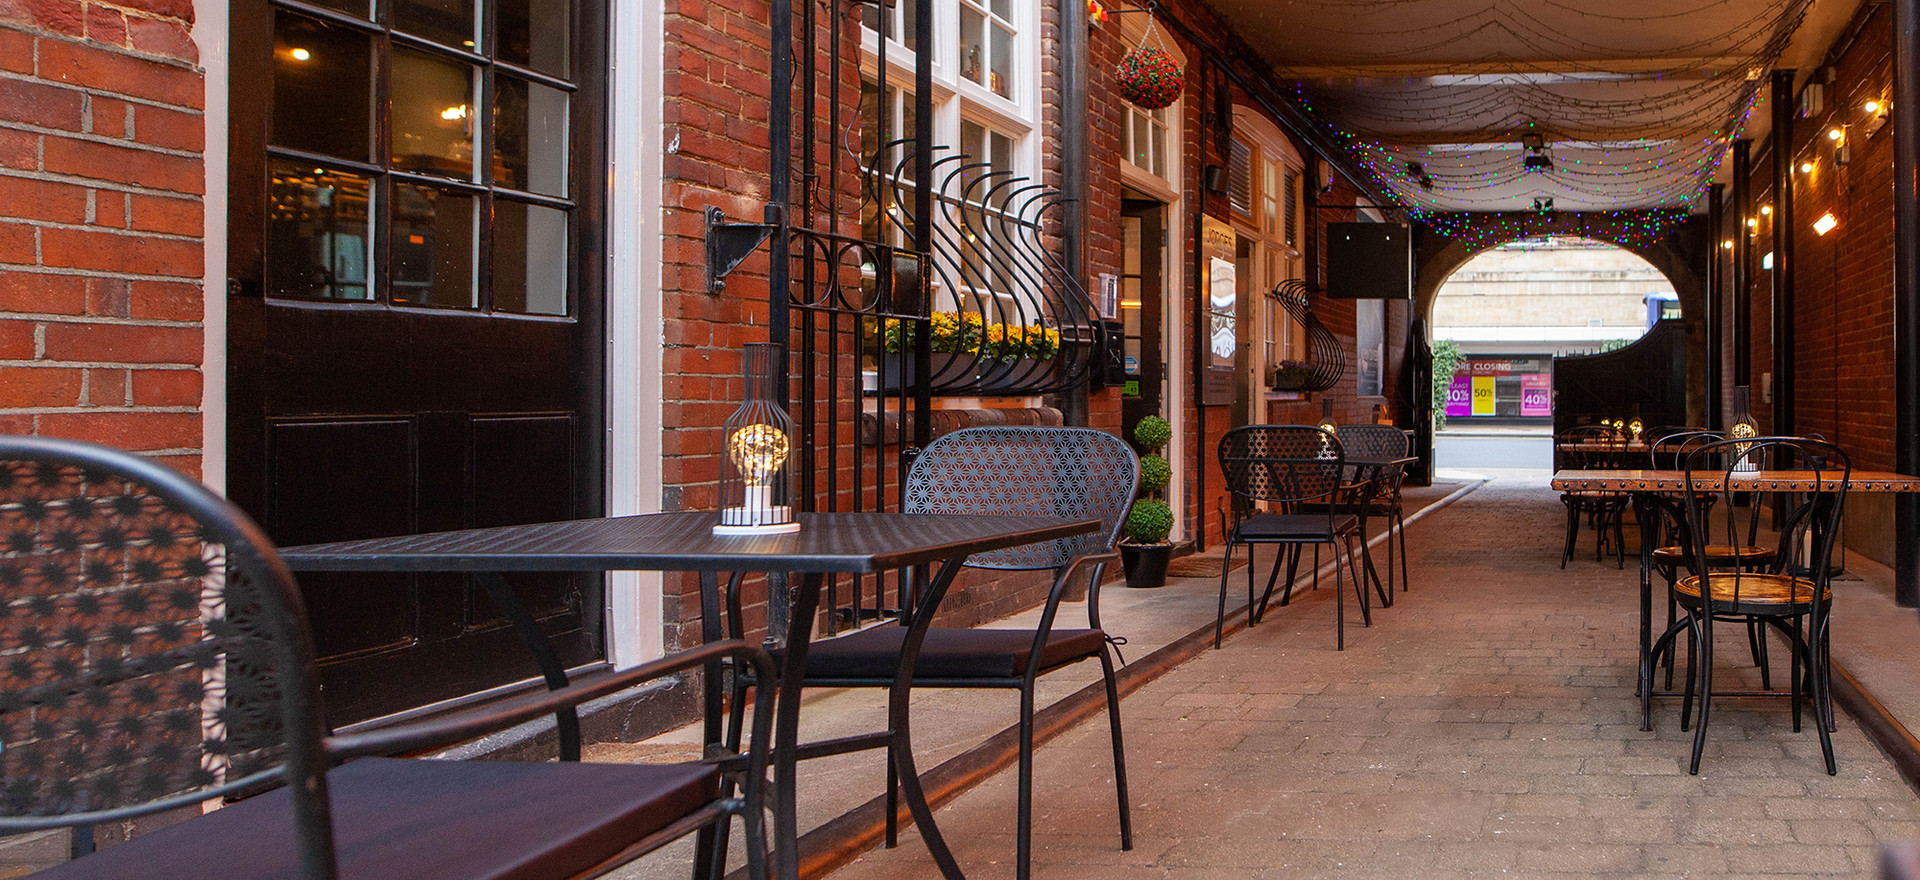 Jorges restaurant is a great place to eat lunch outside in Norwich